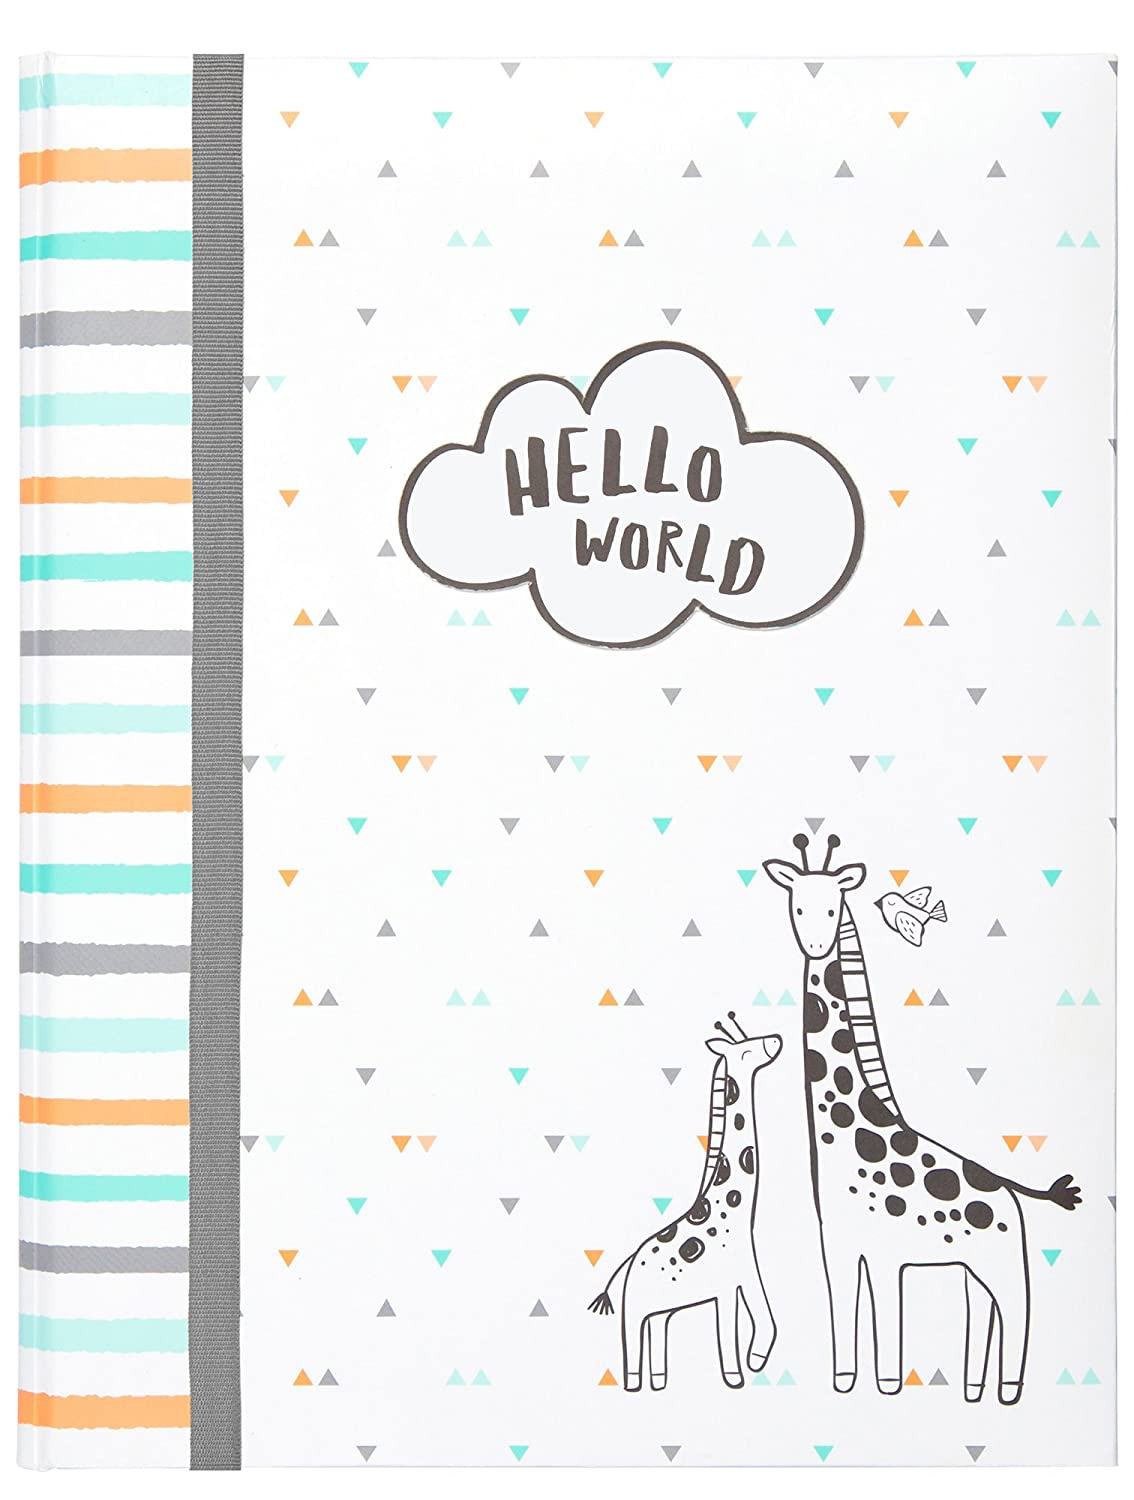 Carter'sHello World Perfect-Bound Memory Book for Newborns and Babies, 64 Pages, 9 W x 11.125 H 9 W x 11.125 H C.R. Gibson - Baby B2-18280